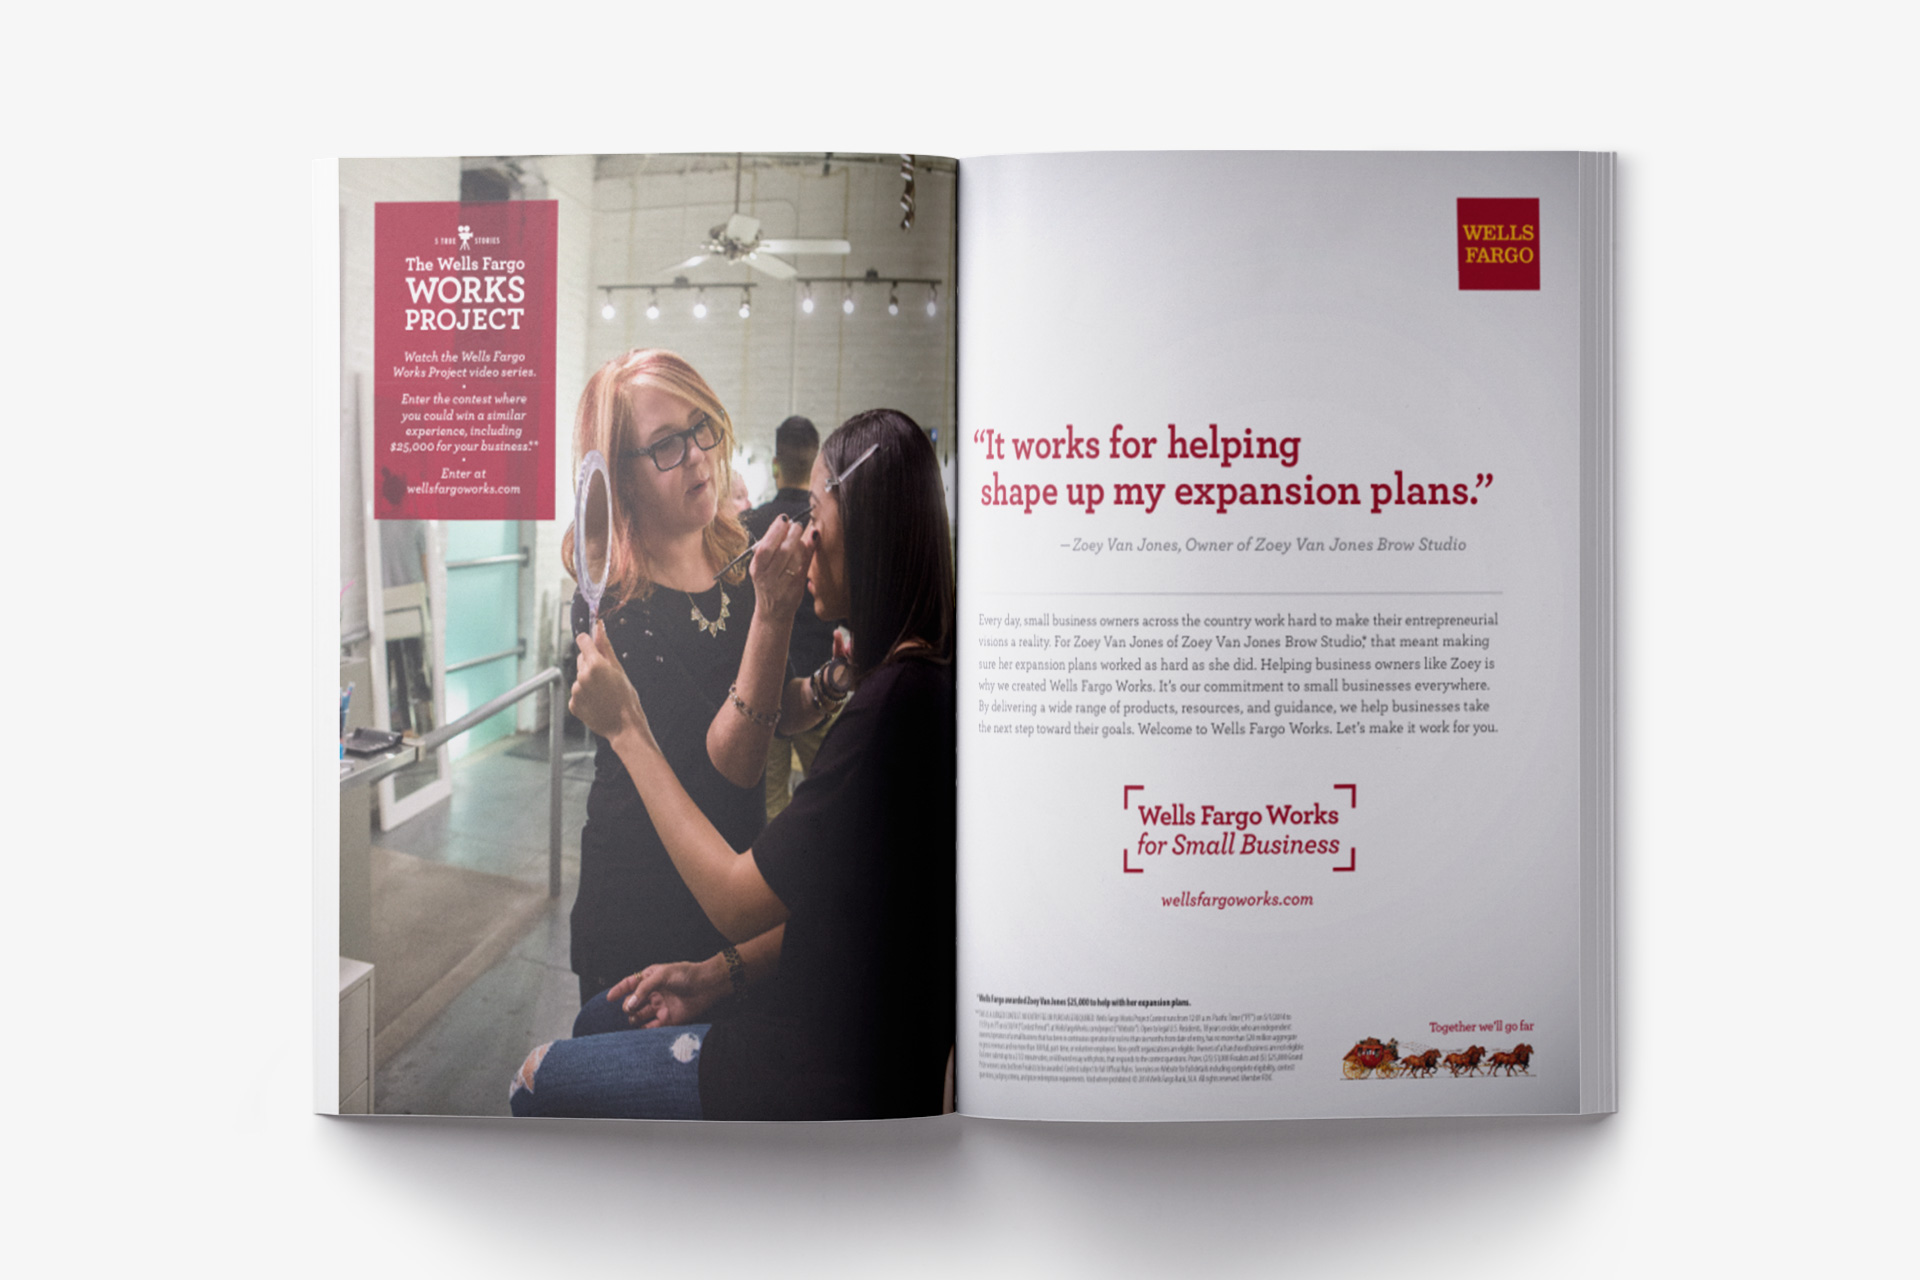 Wells Fargo Works for Small Business Print Ad